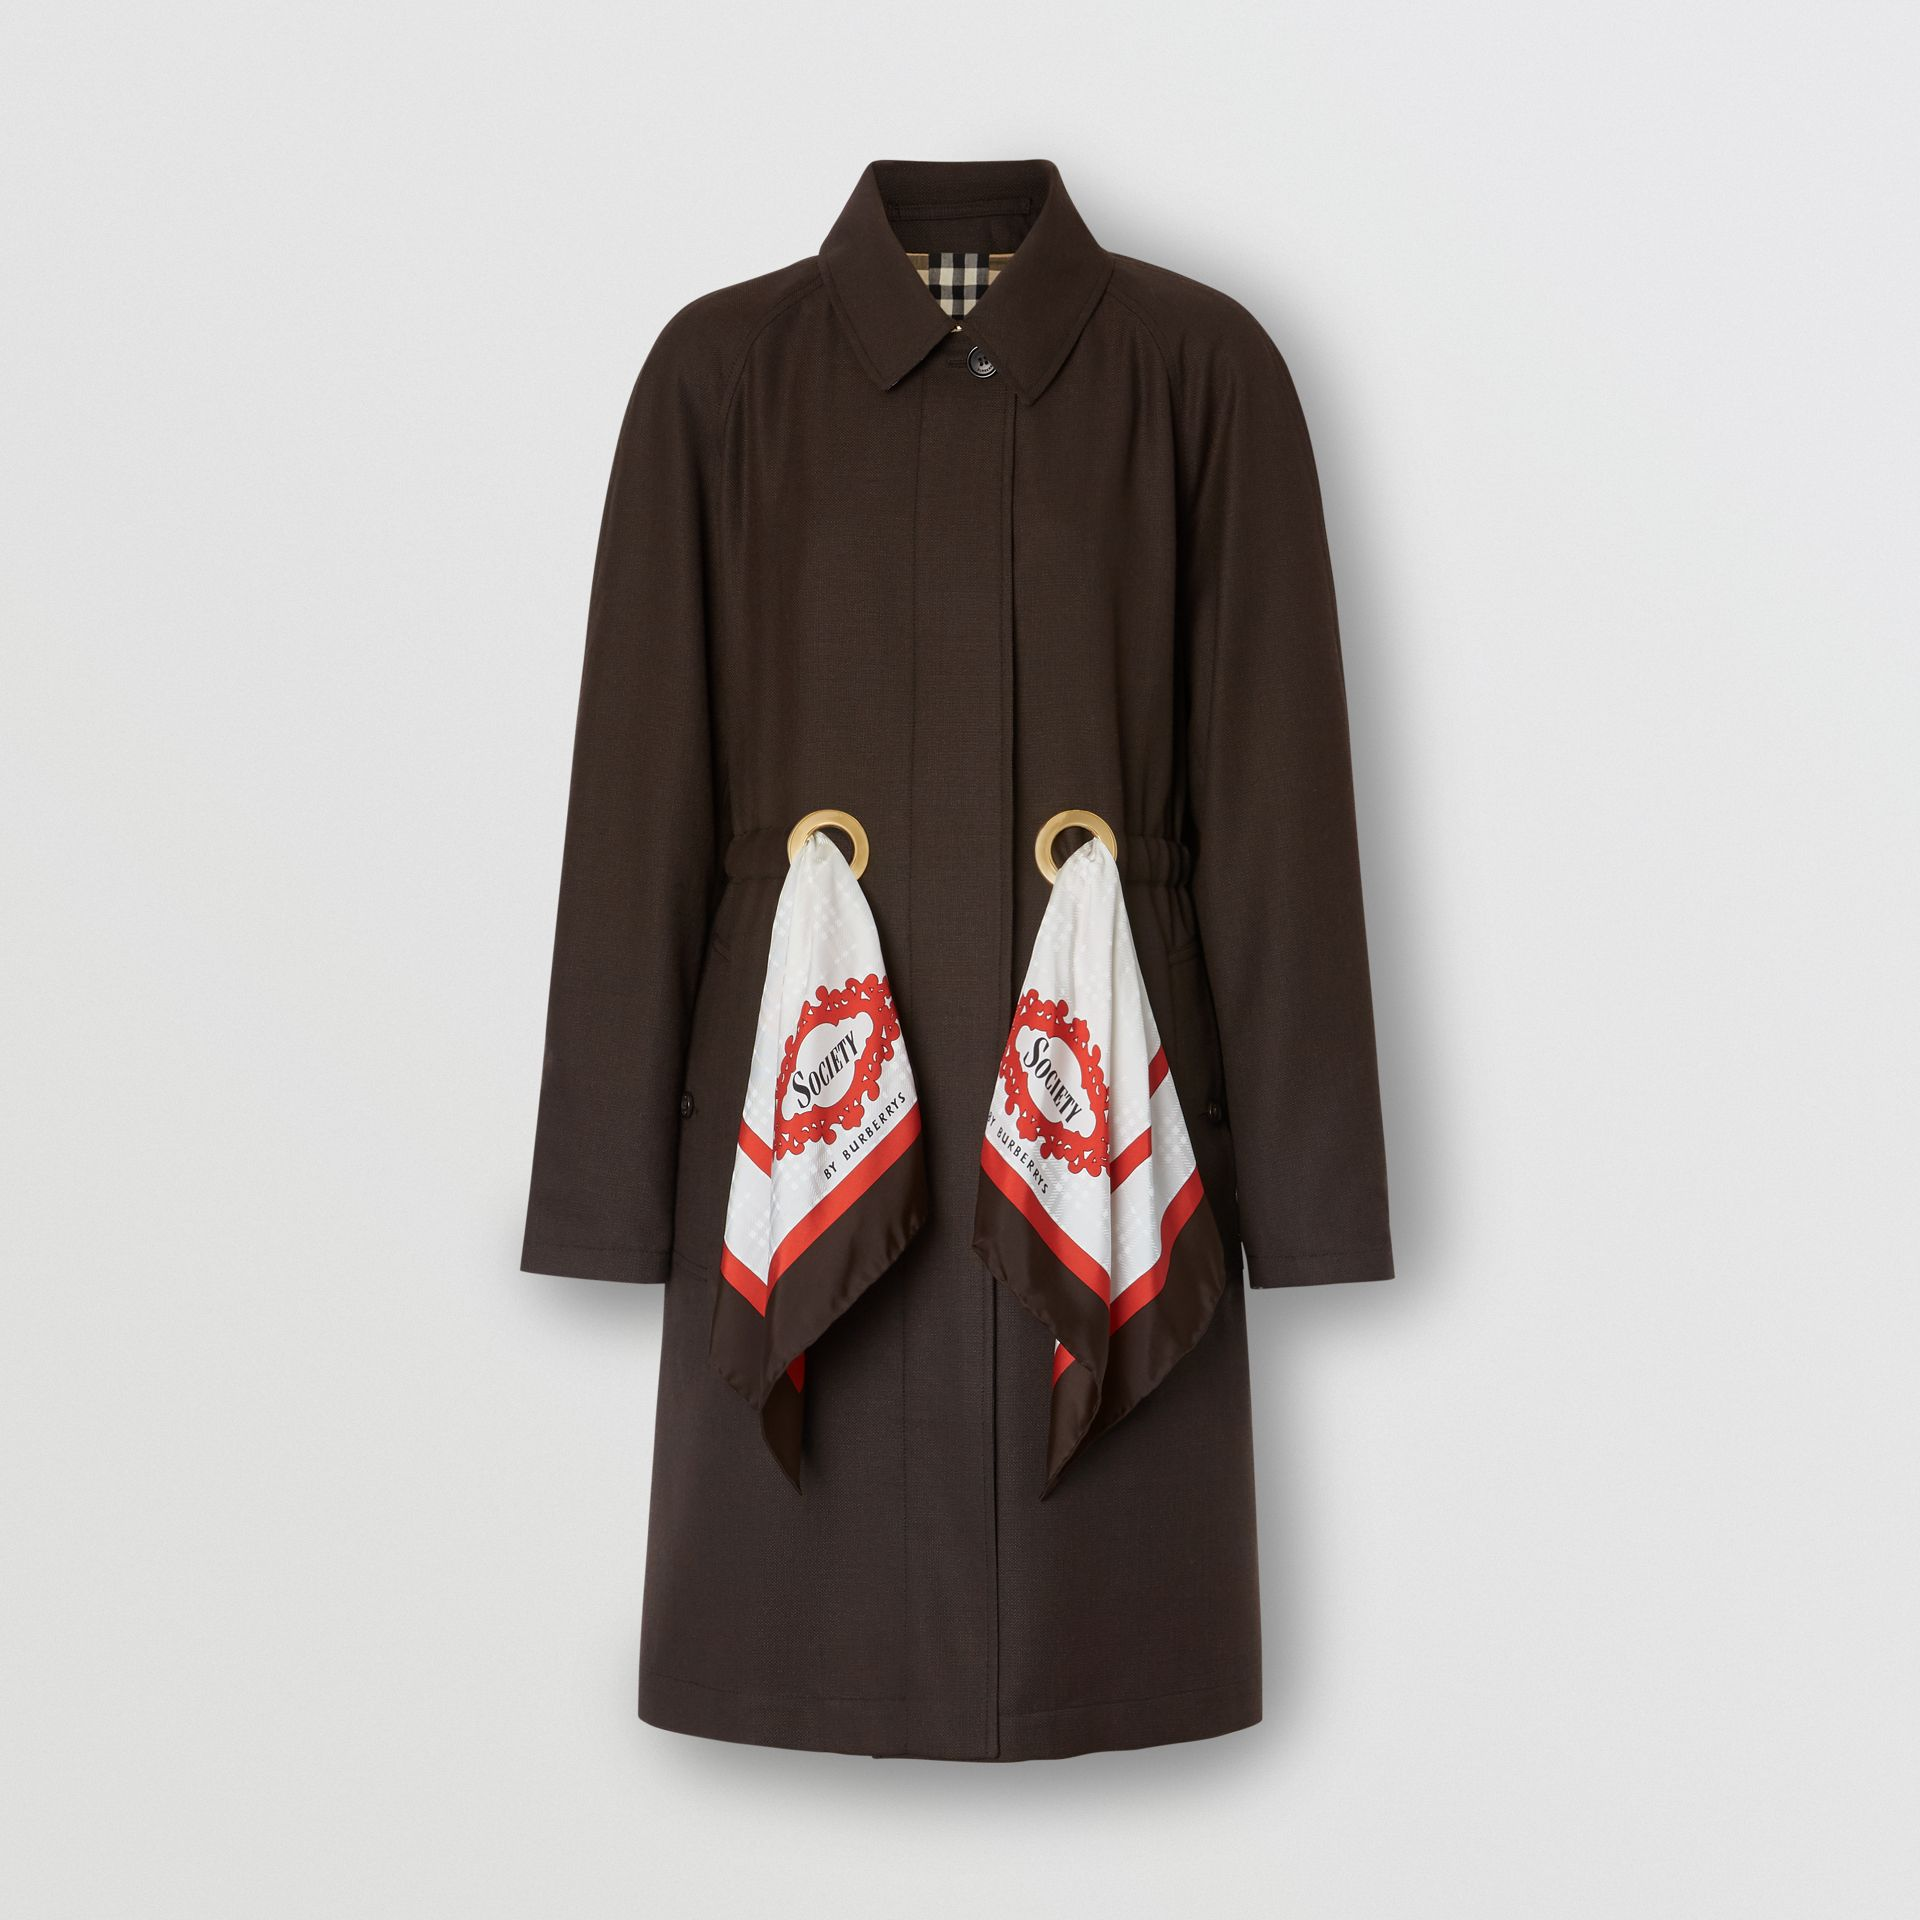 Scarf Detail Wool Car Coat in Coffee - Women | Burberry United States - gallery image 3